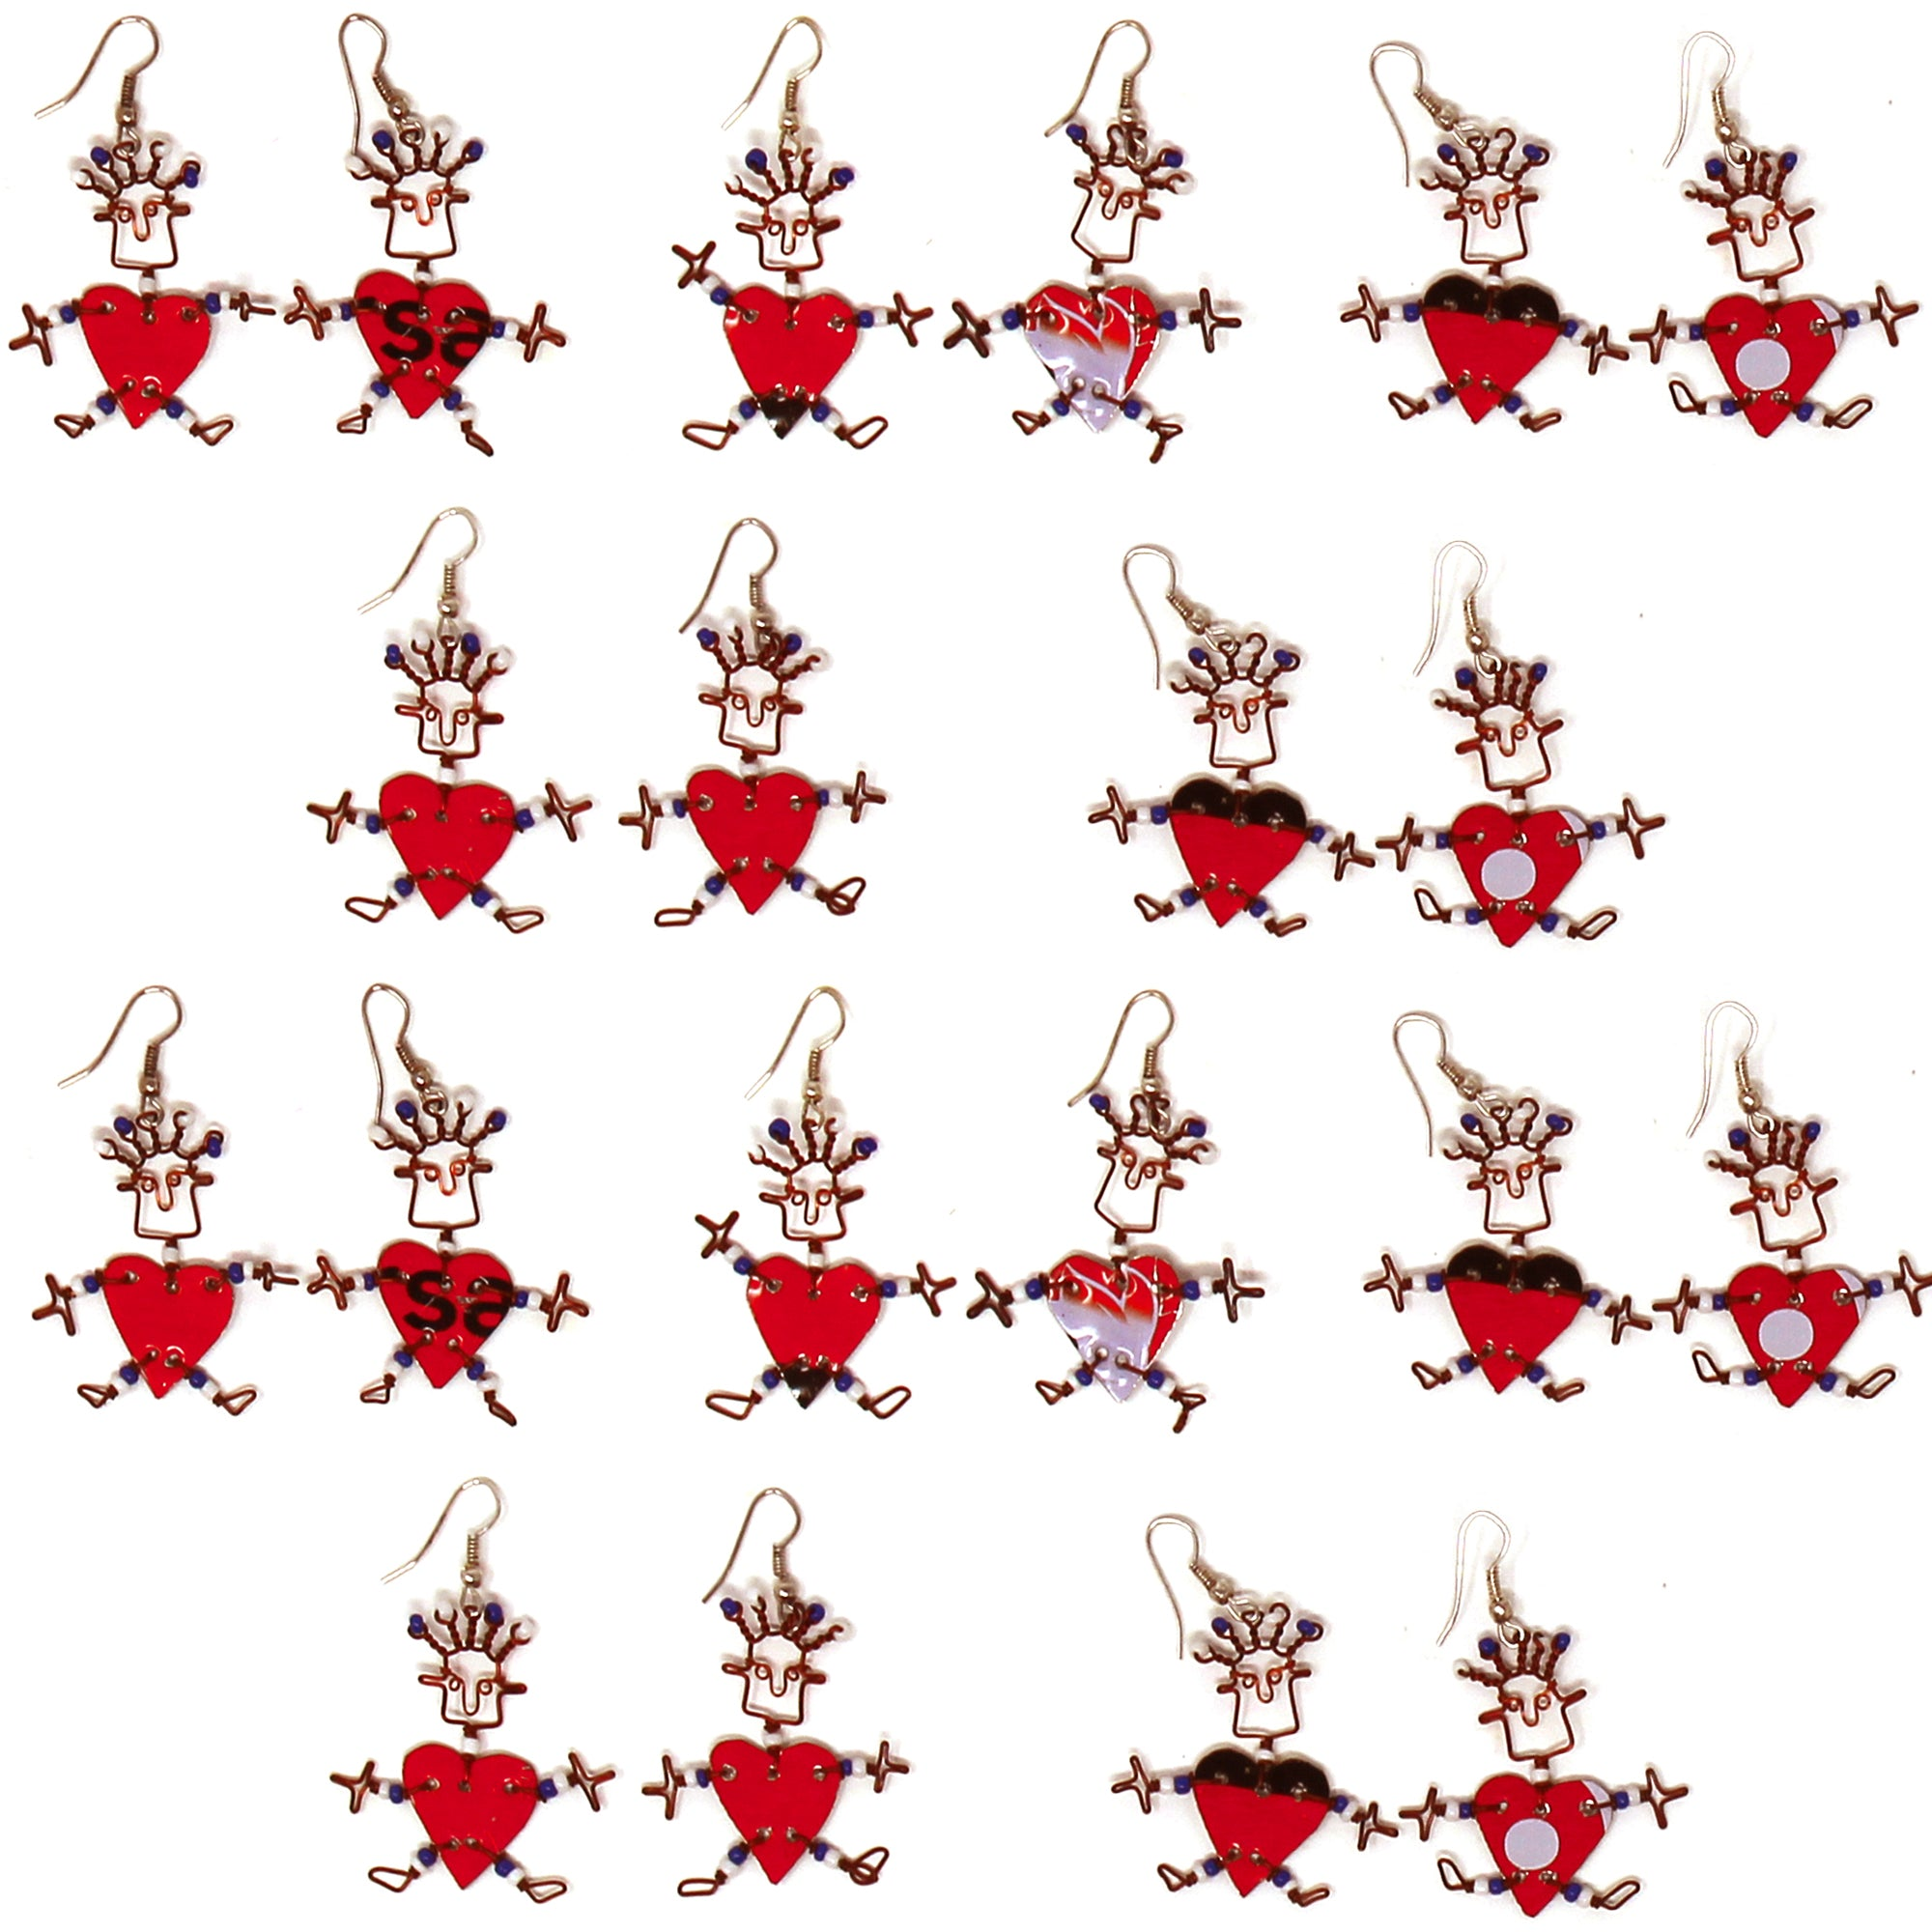 Set of 10 Dancing Girl Heart Body Earrings in Red